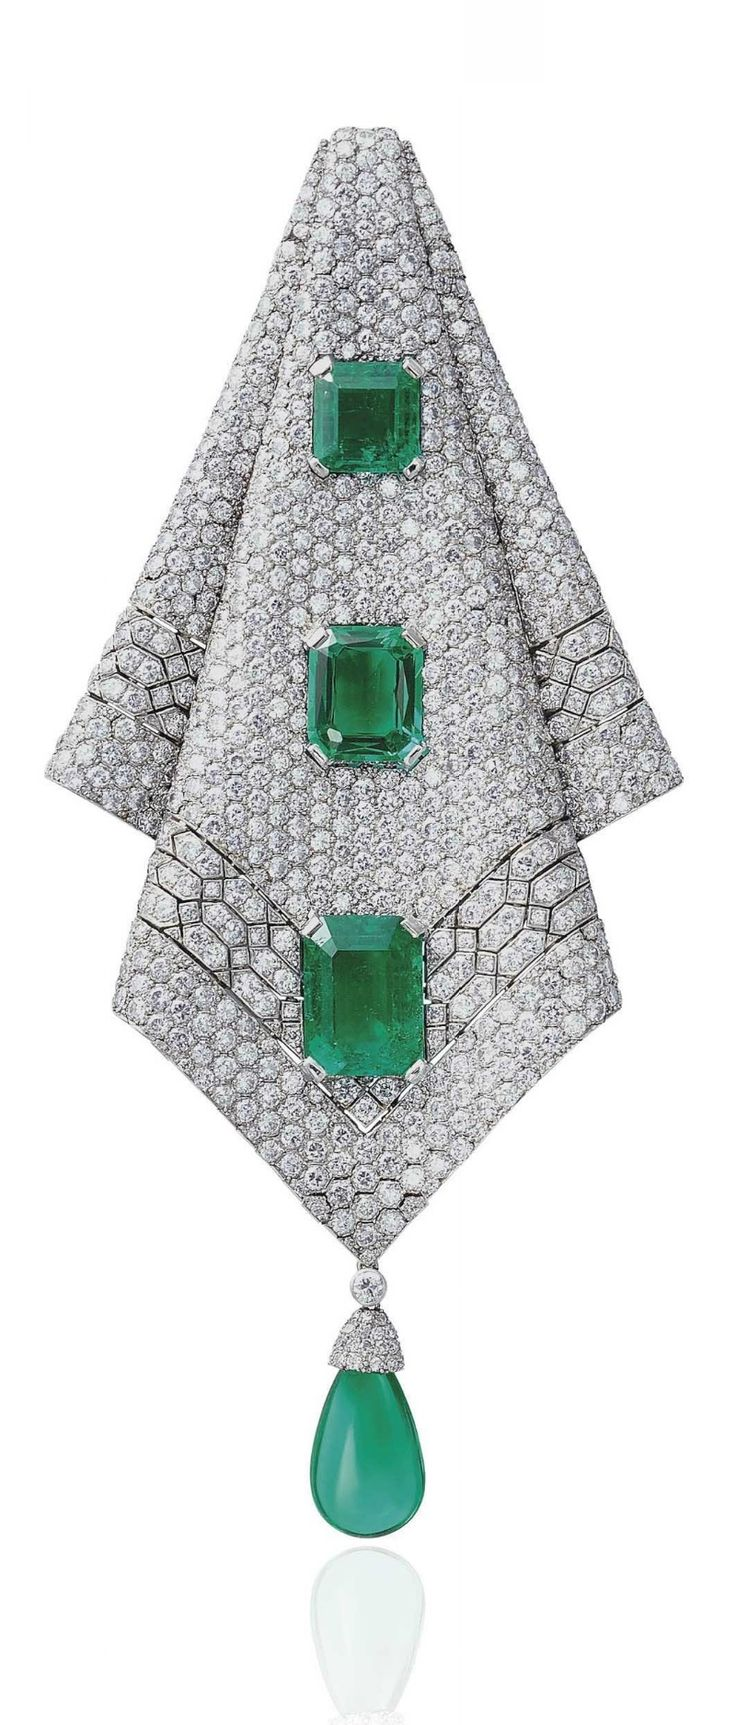 AN EXQUISITE ART DECO EMERALD AND DIAMOND PENDANT, LATE 1930S. Modelled as a diamond-set articulated folded cloth, set with three octagonal step-cut emeralds, weighing approximately 10.87, 6.29 and 4.73 carats, to the drop-shaped emerald pendant, late 1930s, 14.0 cm.